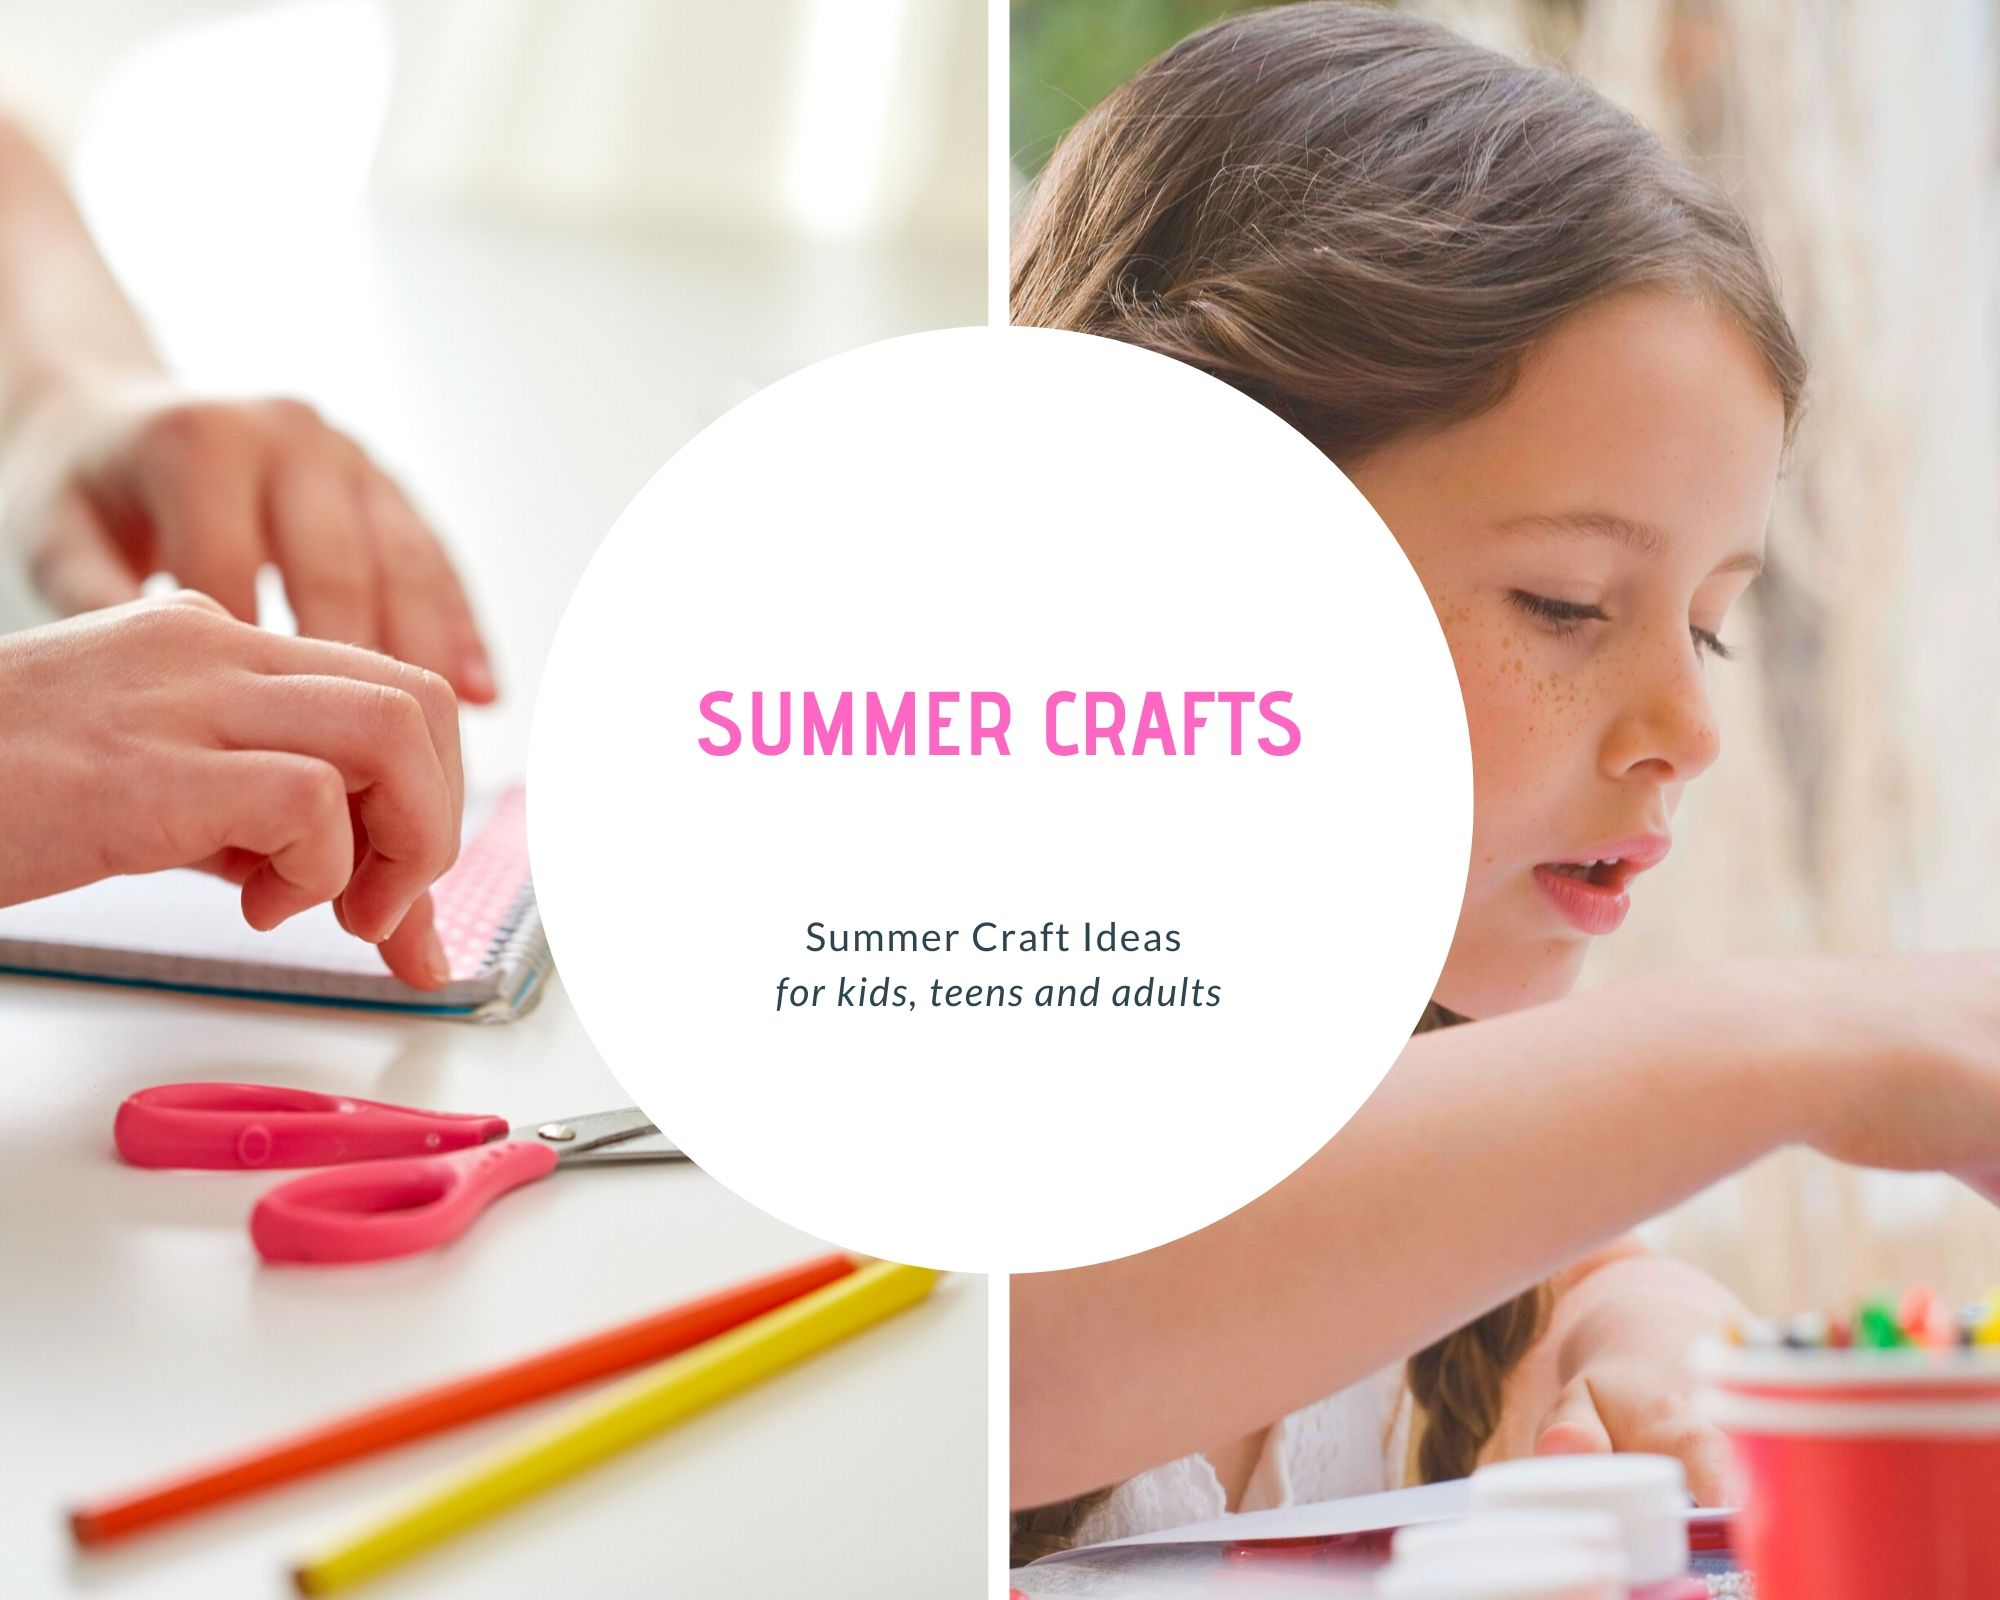 Summer Crafts - Summer Craft Ideas - Crafts for Kids, Teens and Adults - DearCreatives.com